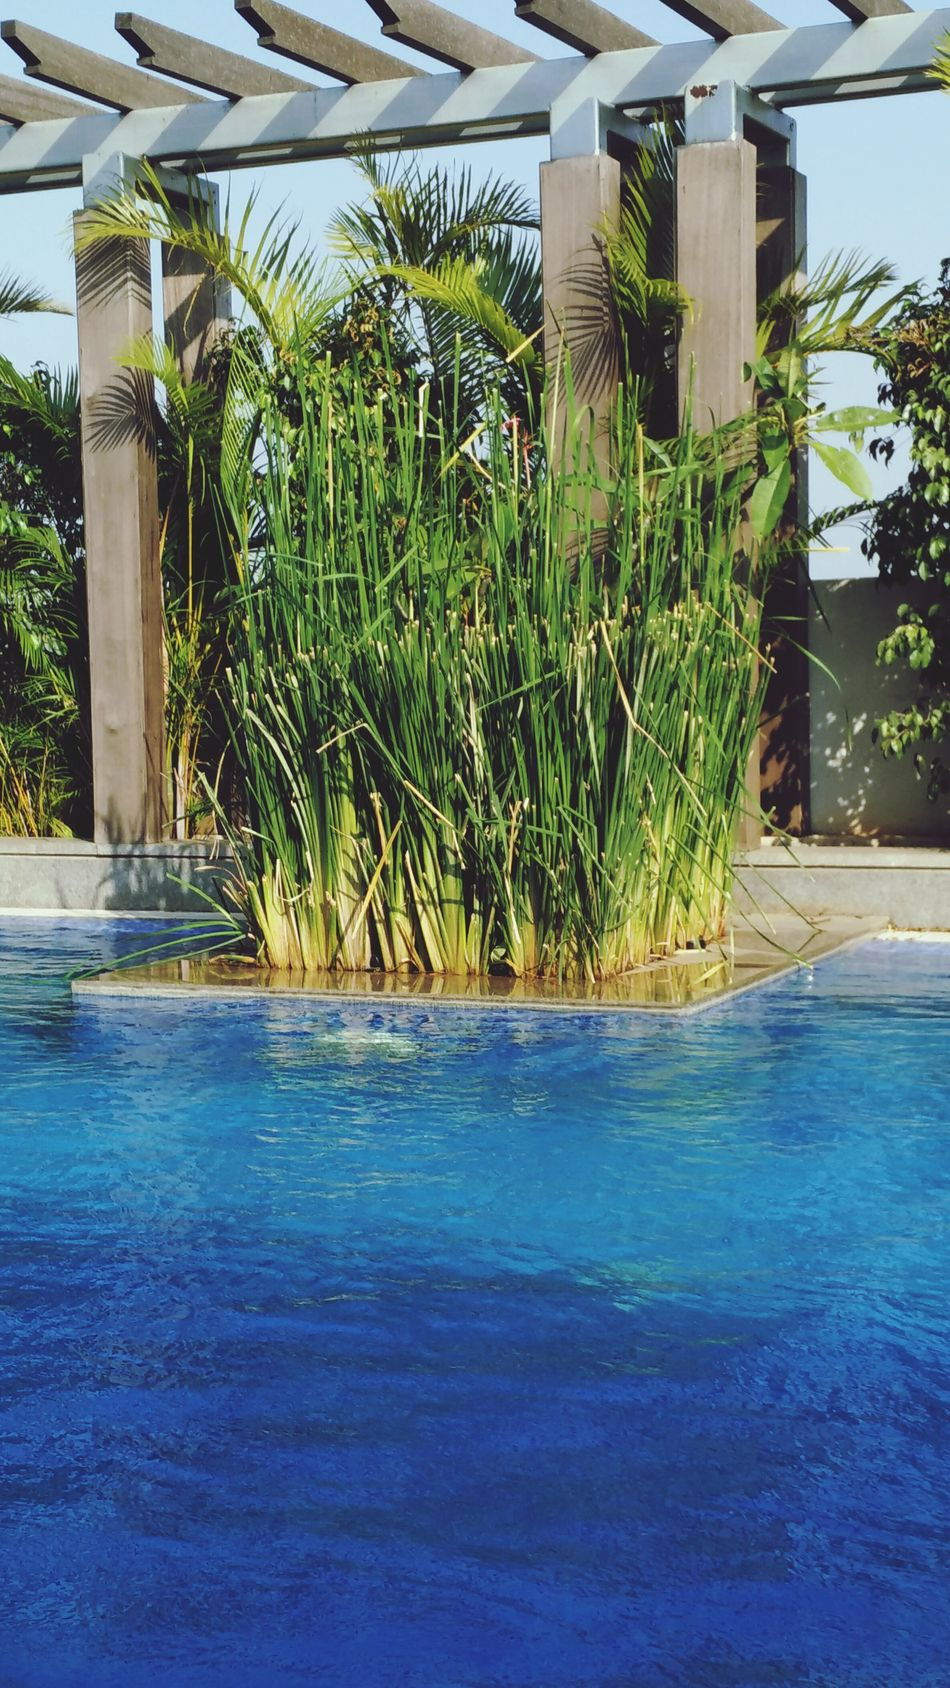 Swimming Peace And Quiet Poolside Pool Blue Water Green Grass Plants 🌱 Relaxing Summertime